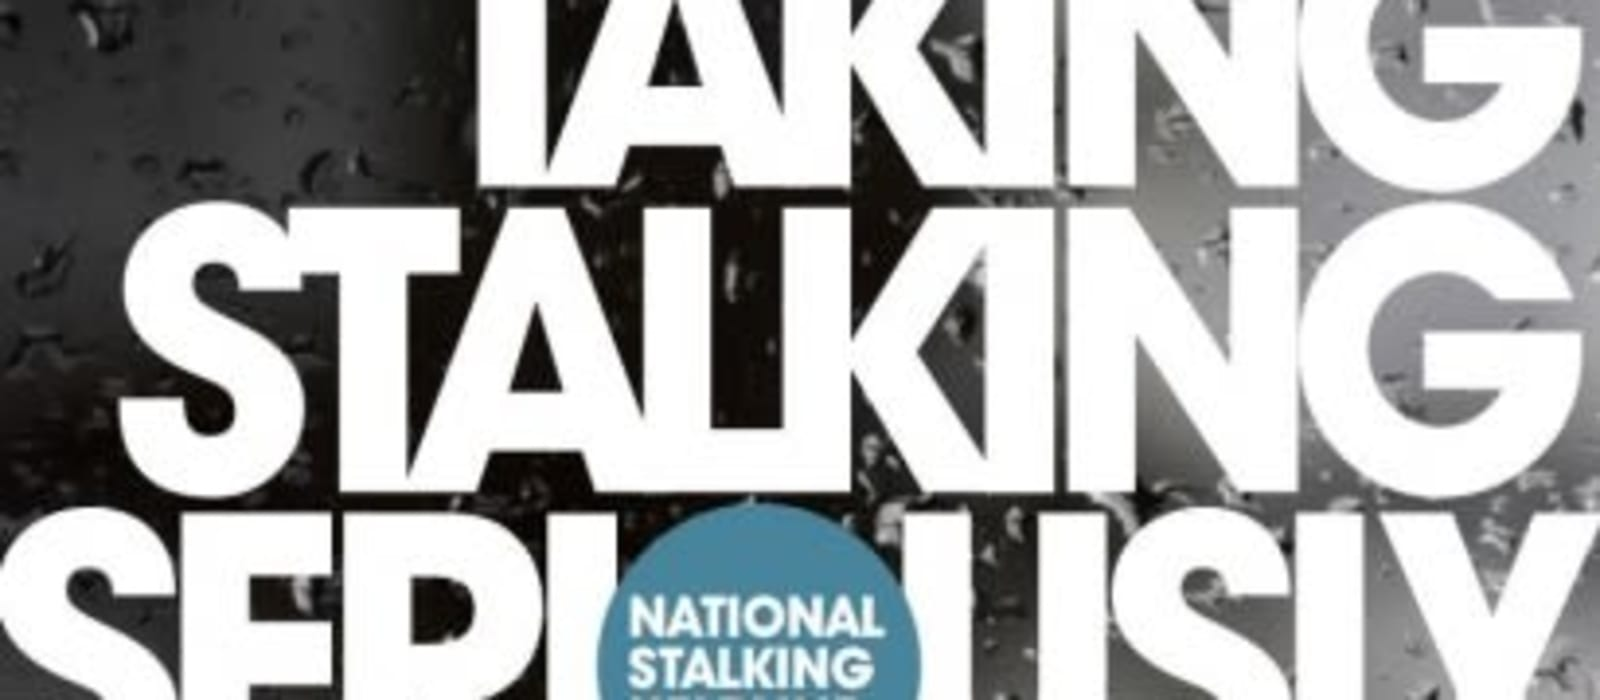 Suzy Lamplugh Trust secures funding for intervention work with stalking perpetrators